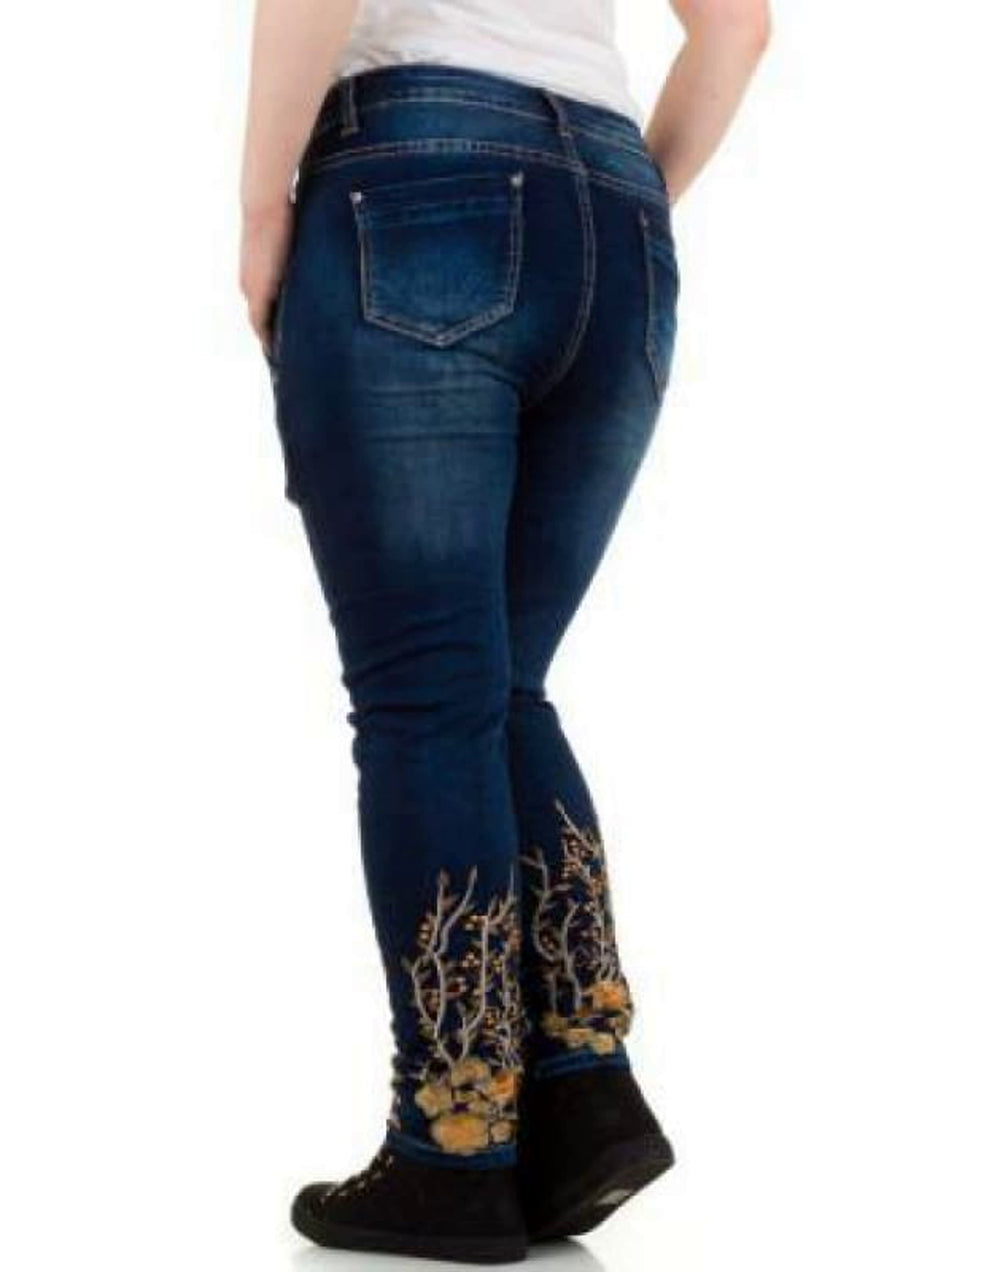 Embroidered Hem Plus Size Jeans - Plus Size Jeans & Jeggings denim, floral embroidered jeans, jeans, plus size, plus size clothing